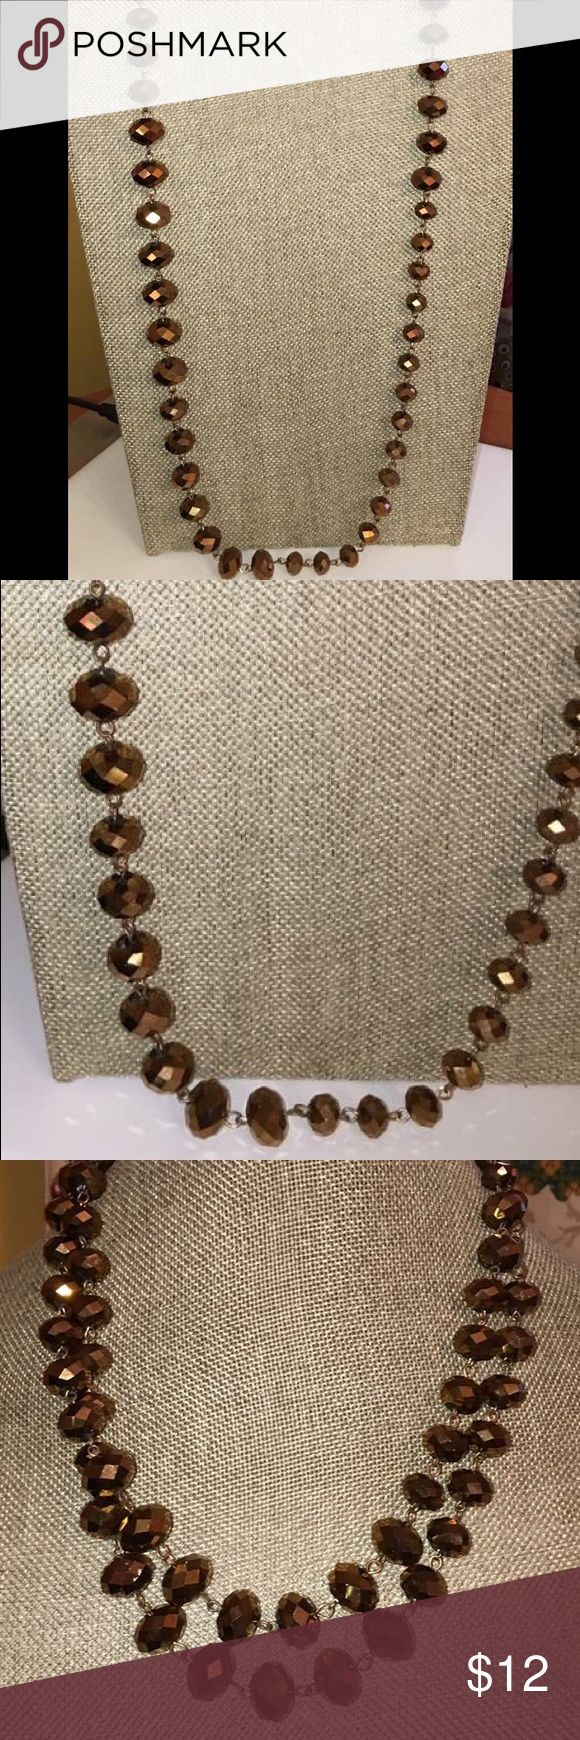 """Long Bronze Faceted Crystal Beaded Chain Necklace Long 42"""" Bronze Faceted Crystal Beaded Chain Necklace. Beads are glass. Jewelry Necklaces"""